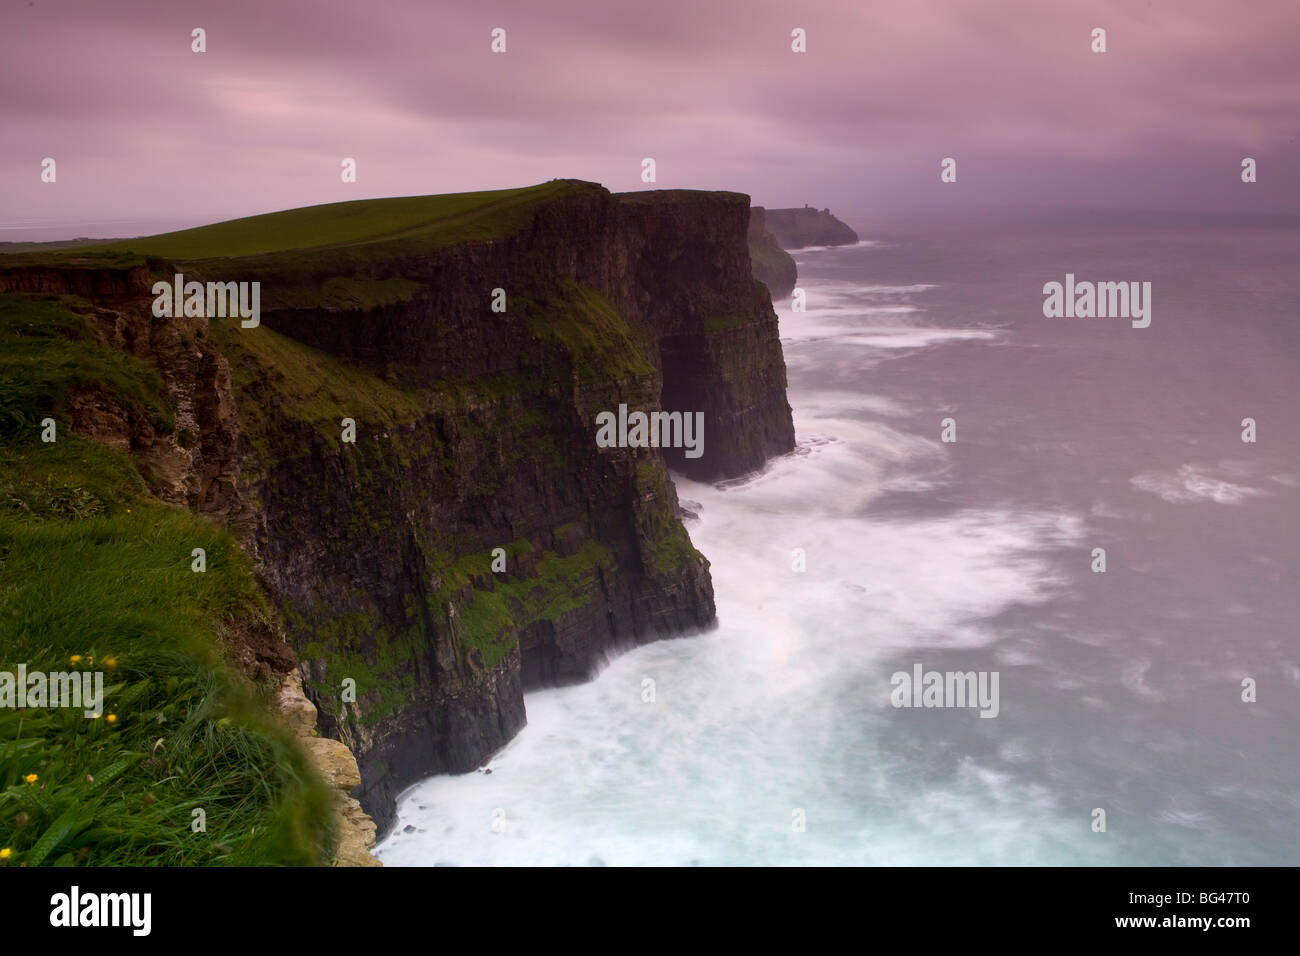 Cliffs of Moher, County Clare, Ireland - Stock Image